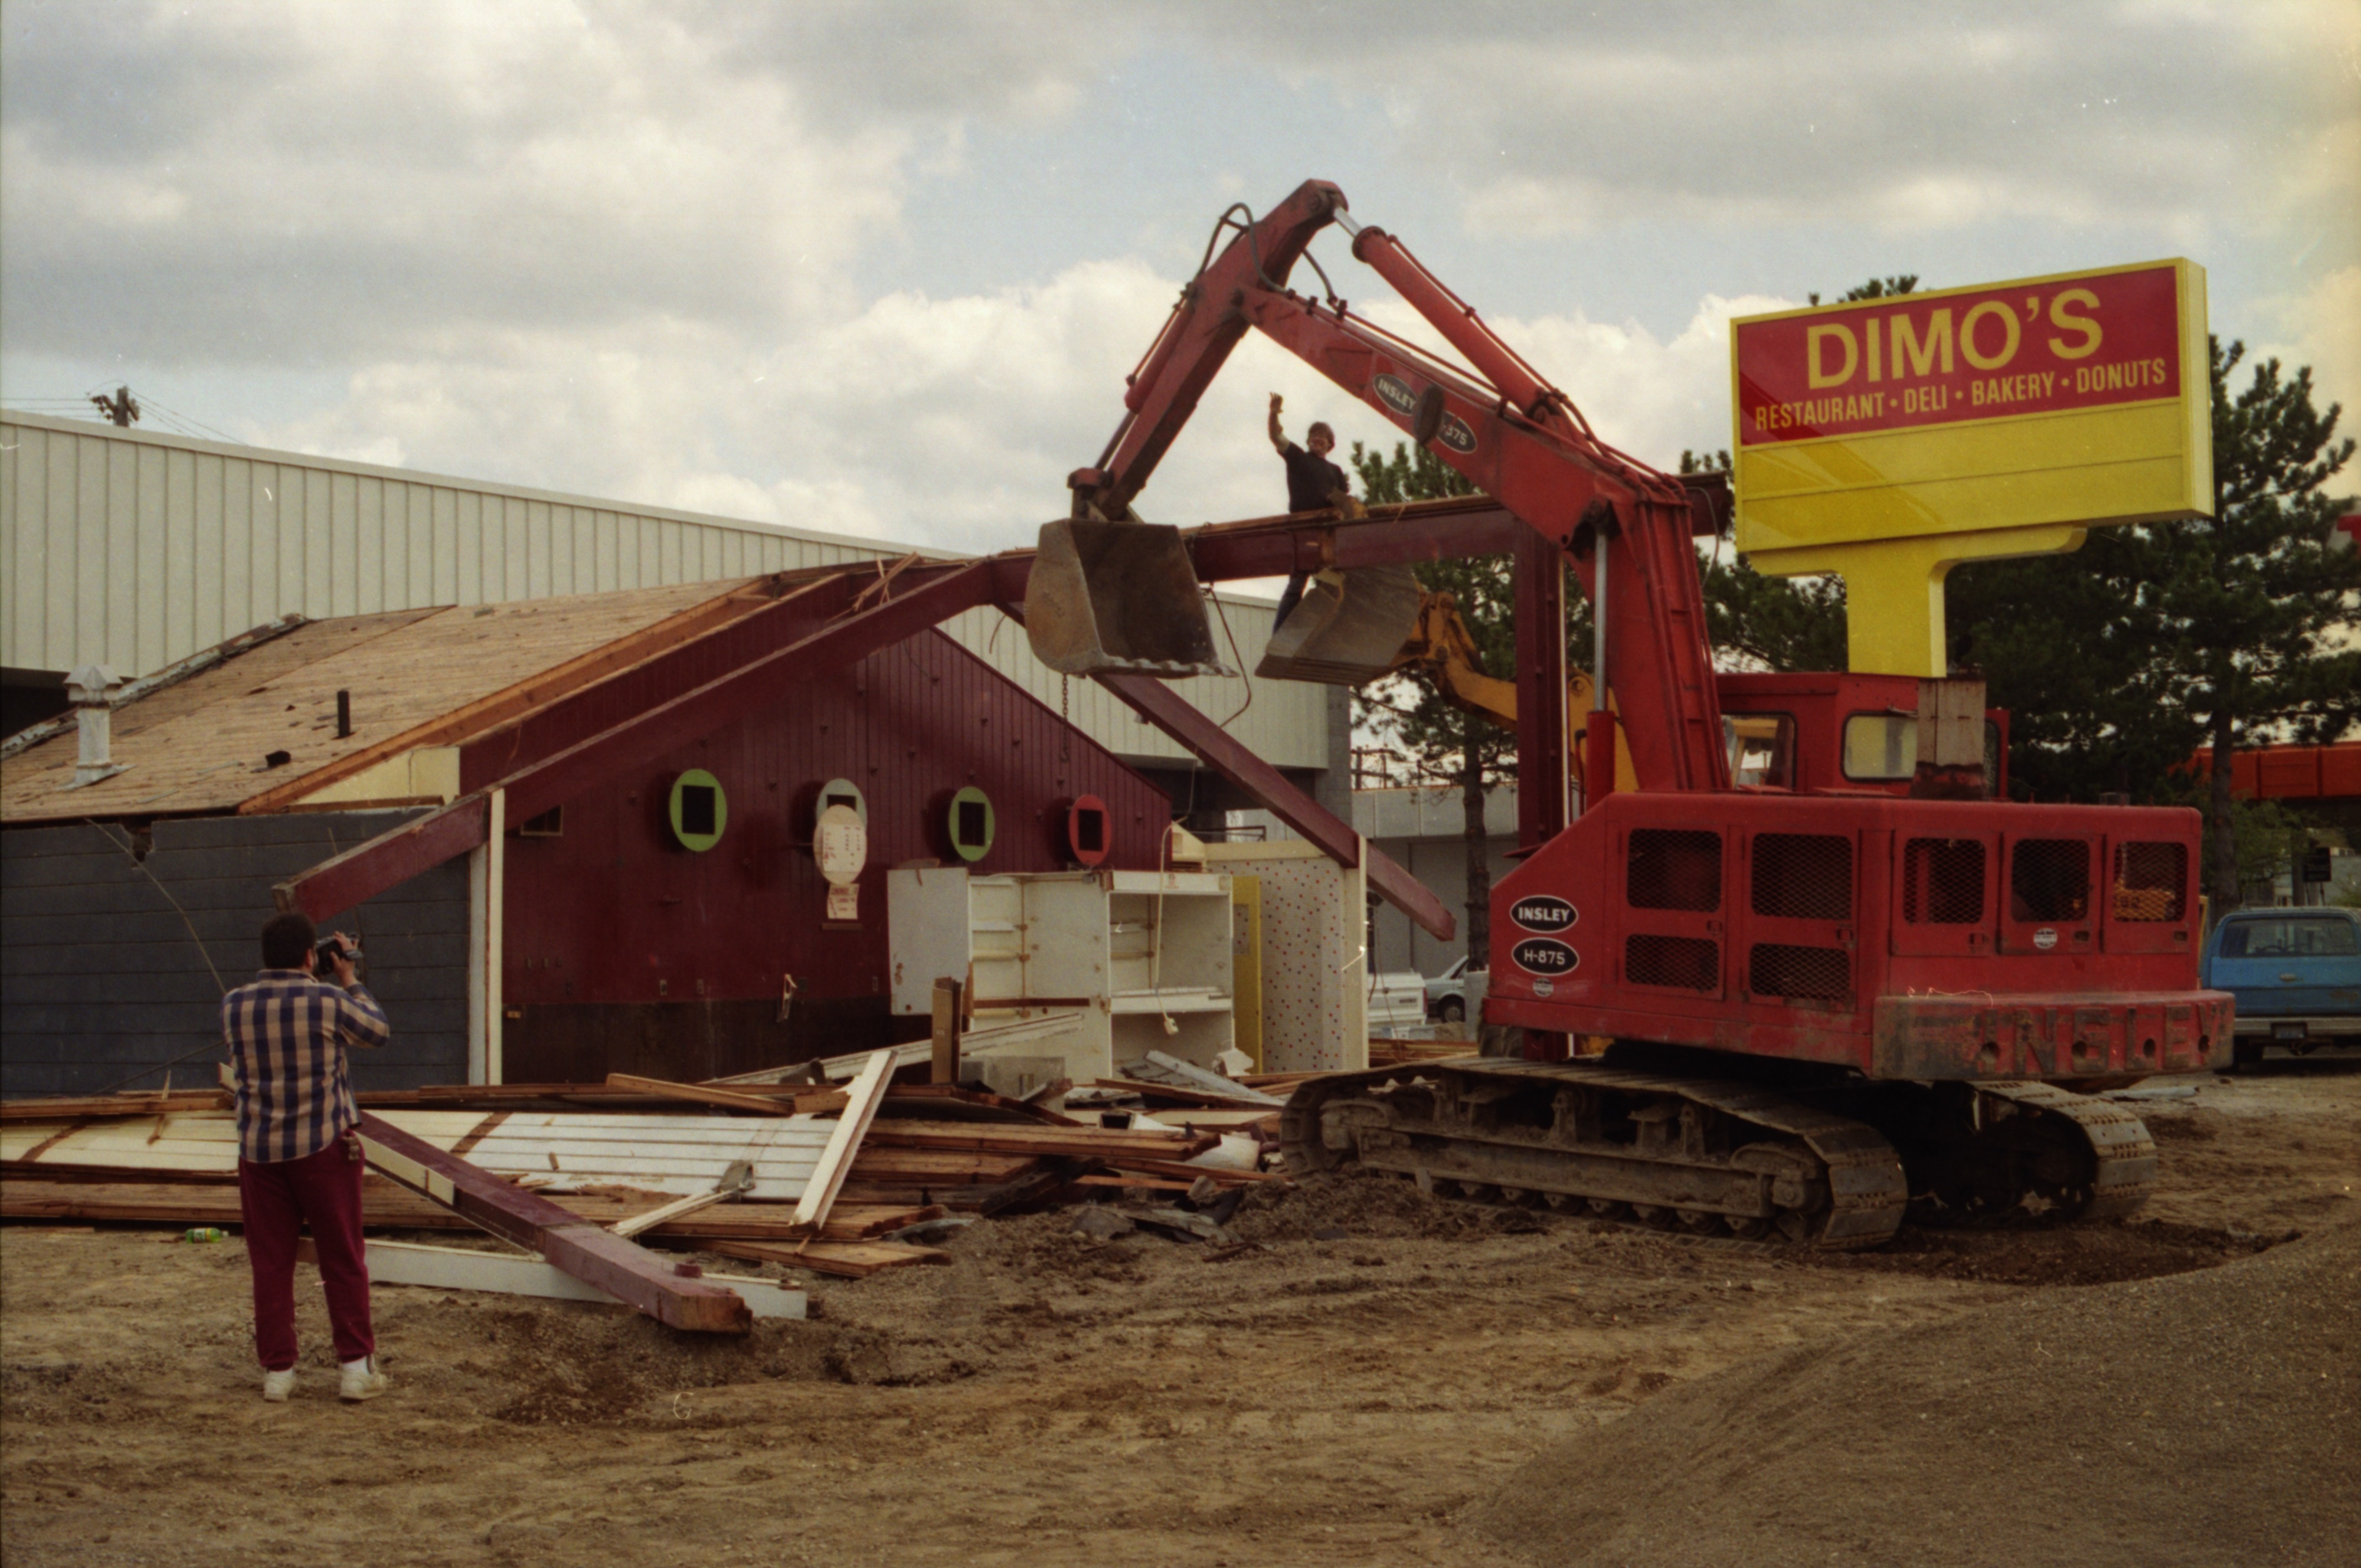 Donuts Time Building Gets Torn Down, May 1992 image